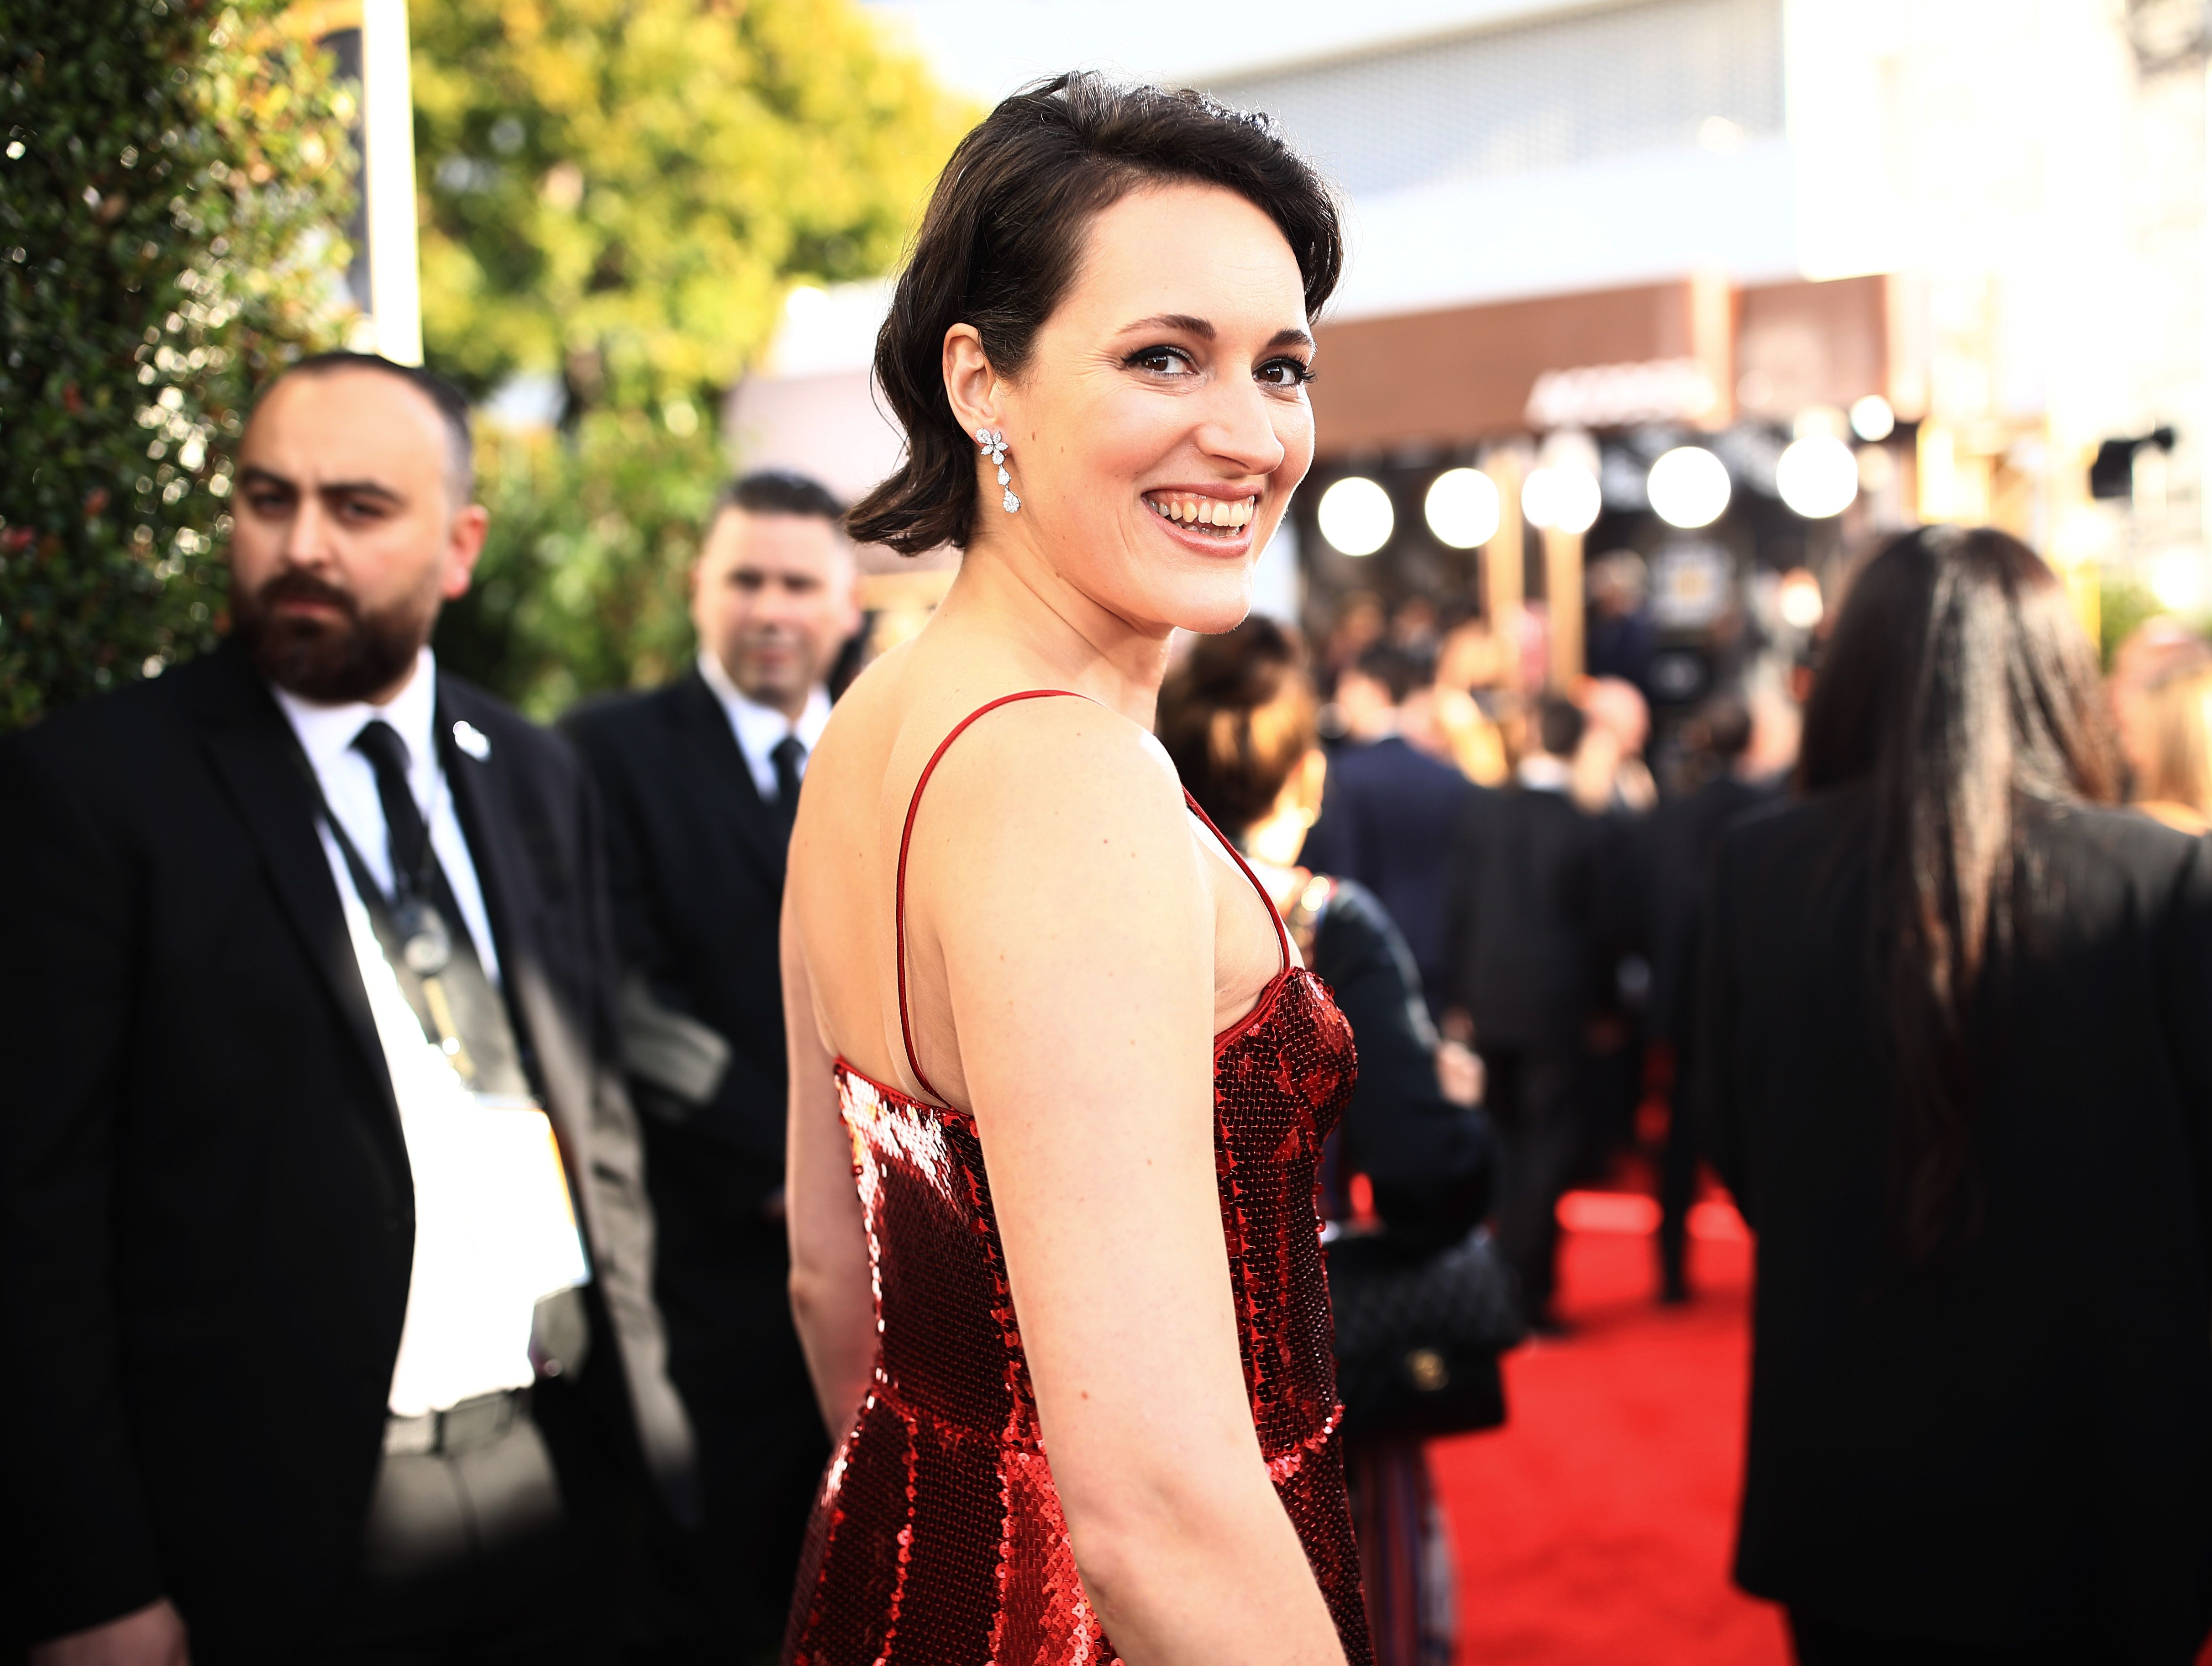 Phoebe Waller-Bridge Is Writing And Directing A New Film